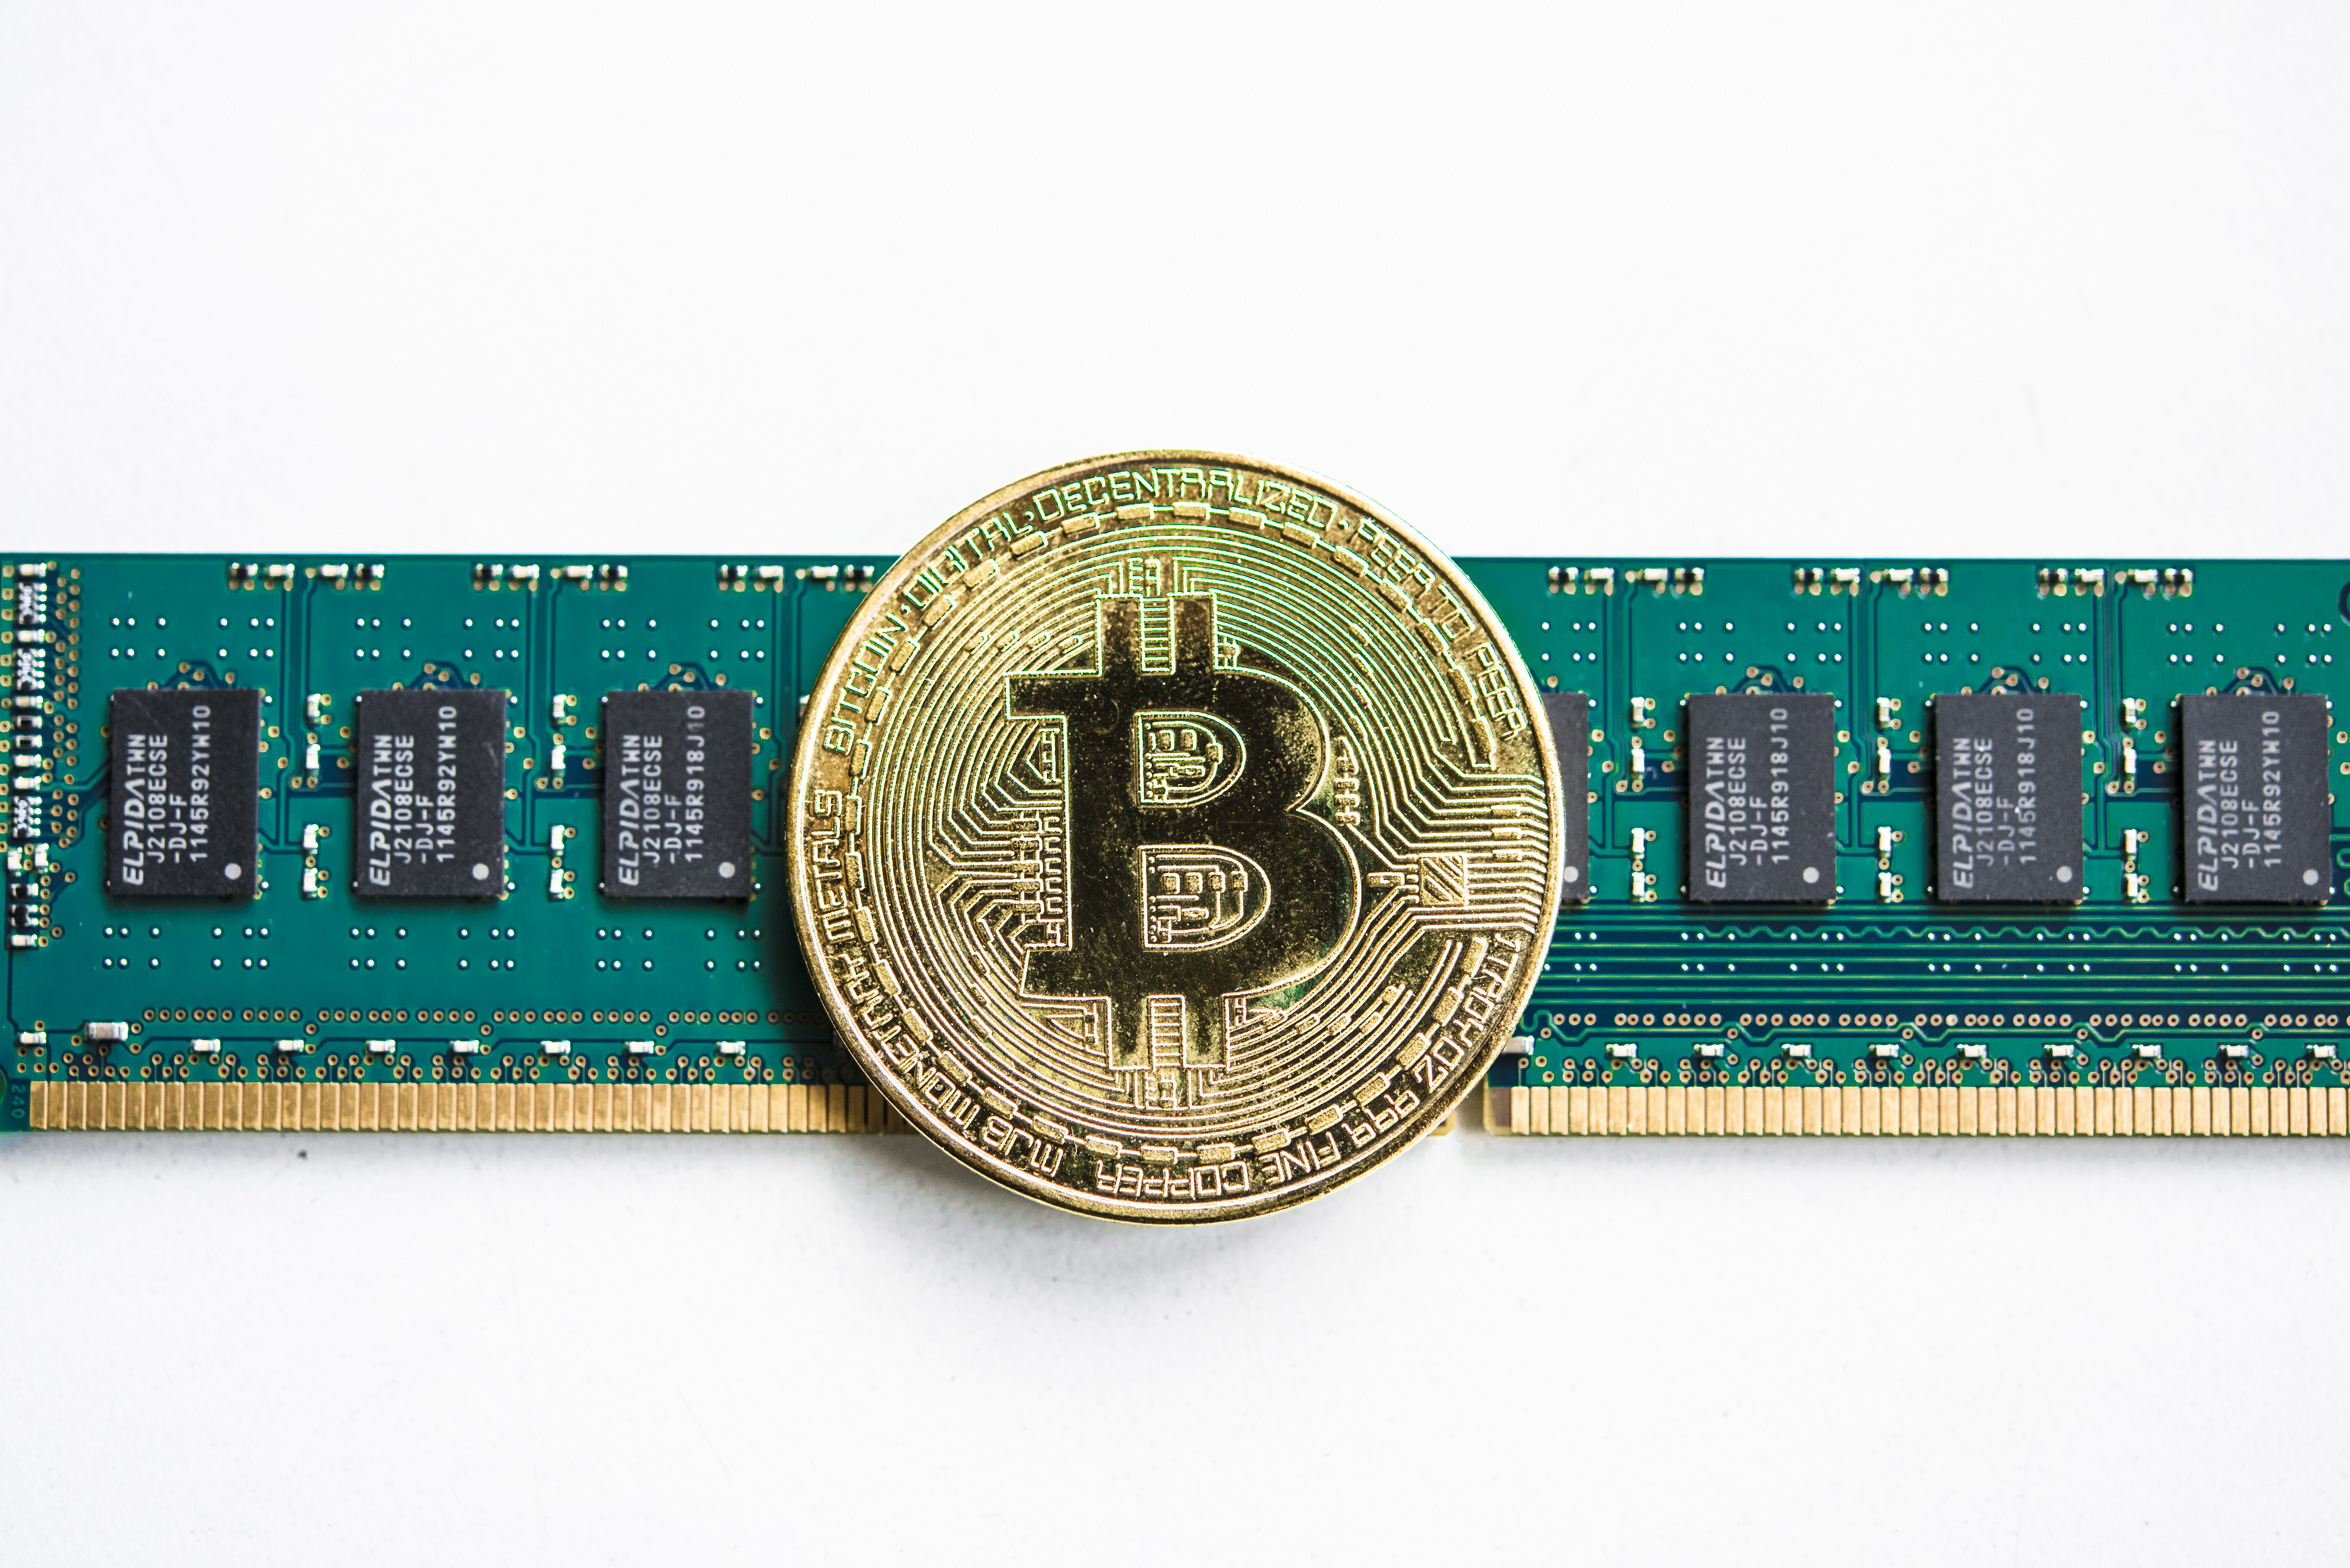 A new report claims bitcoin is mostly powered by renewable energy. Really?